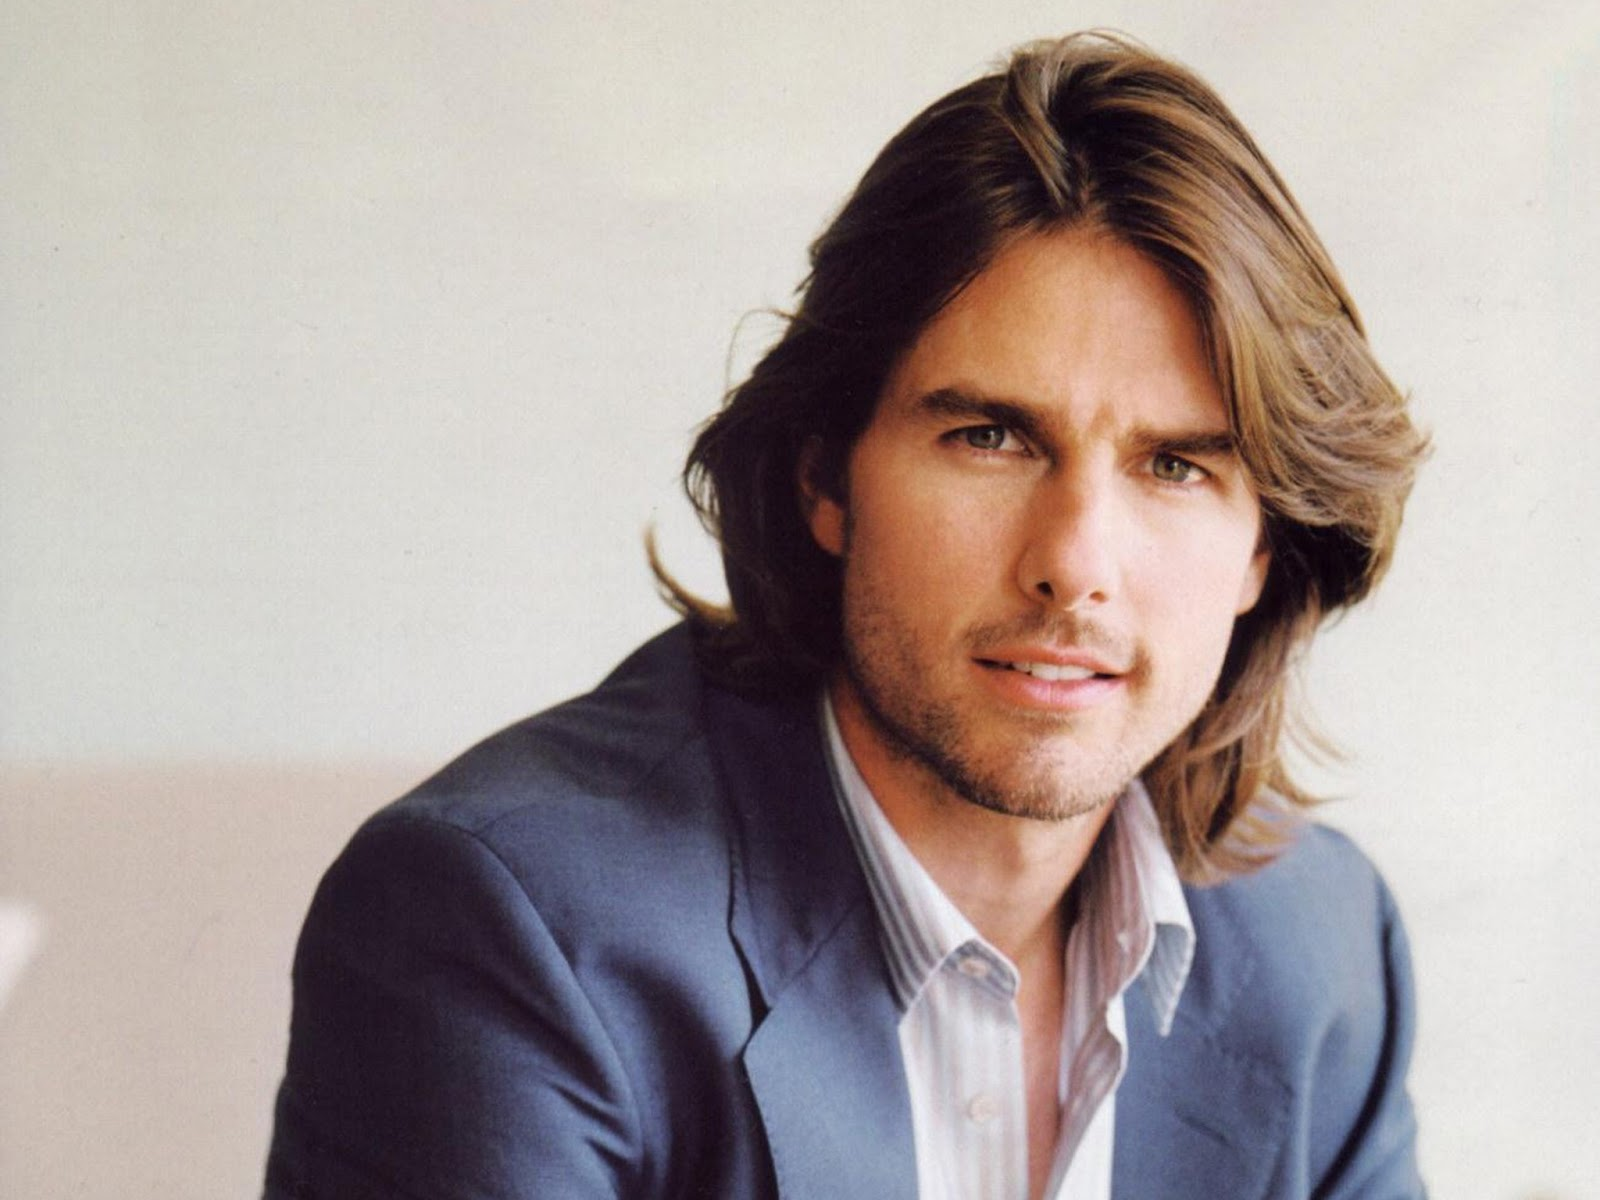 Tom Cruise Wallpapers Hd Hd Images New 1600x1200